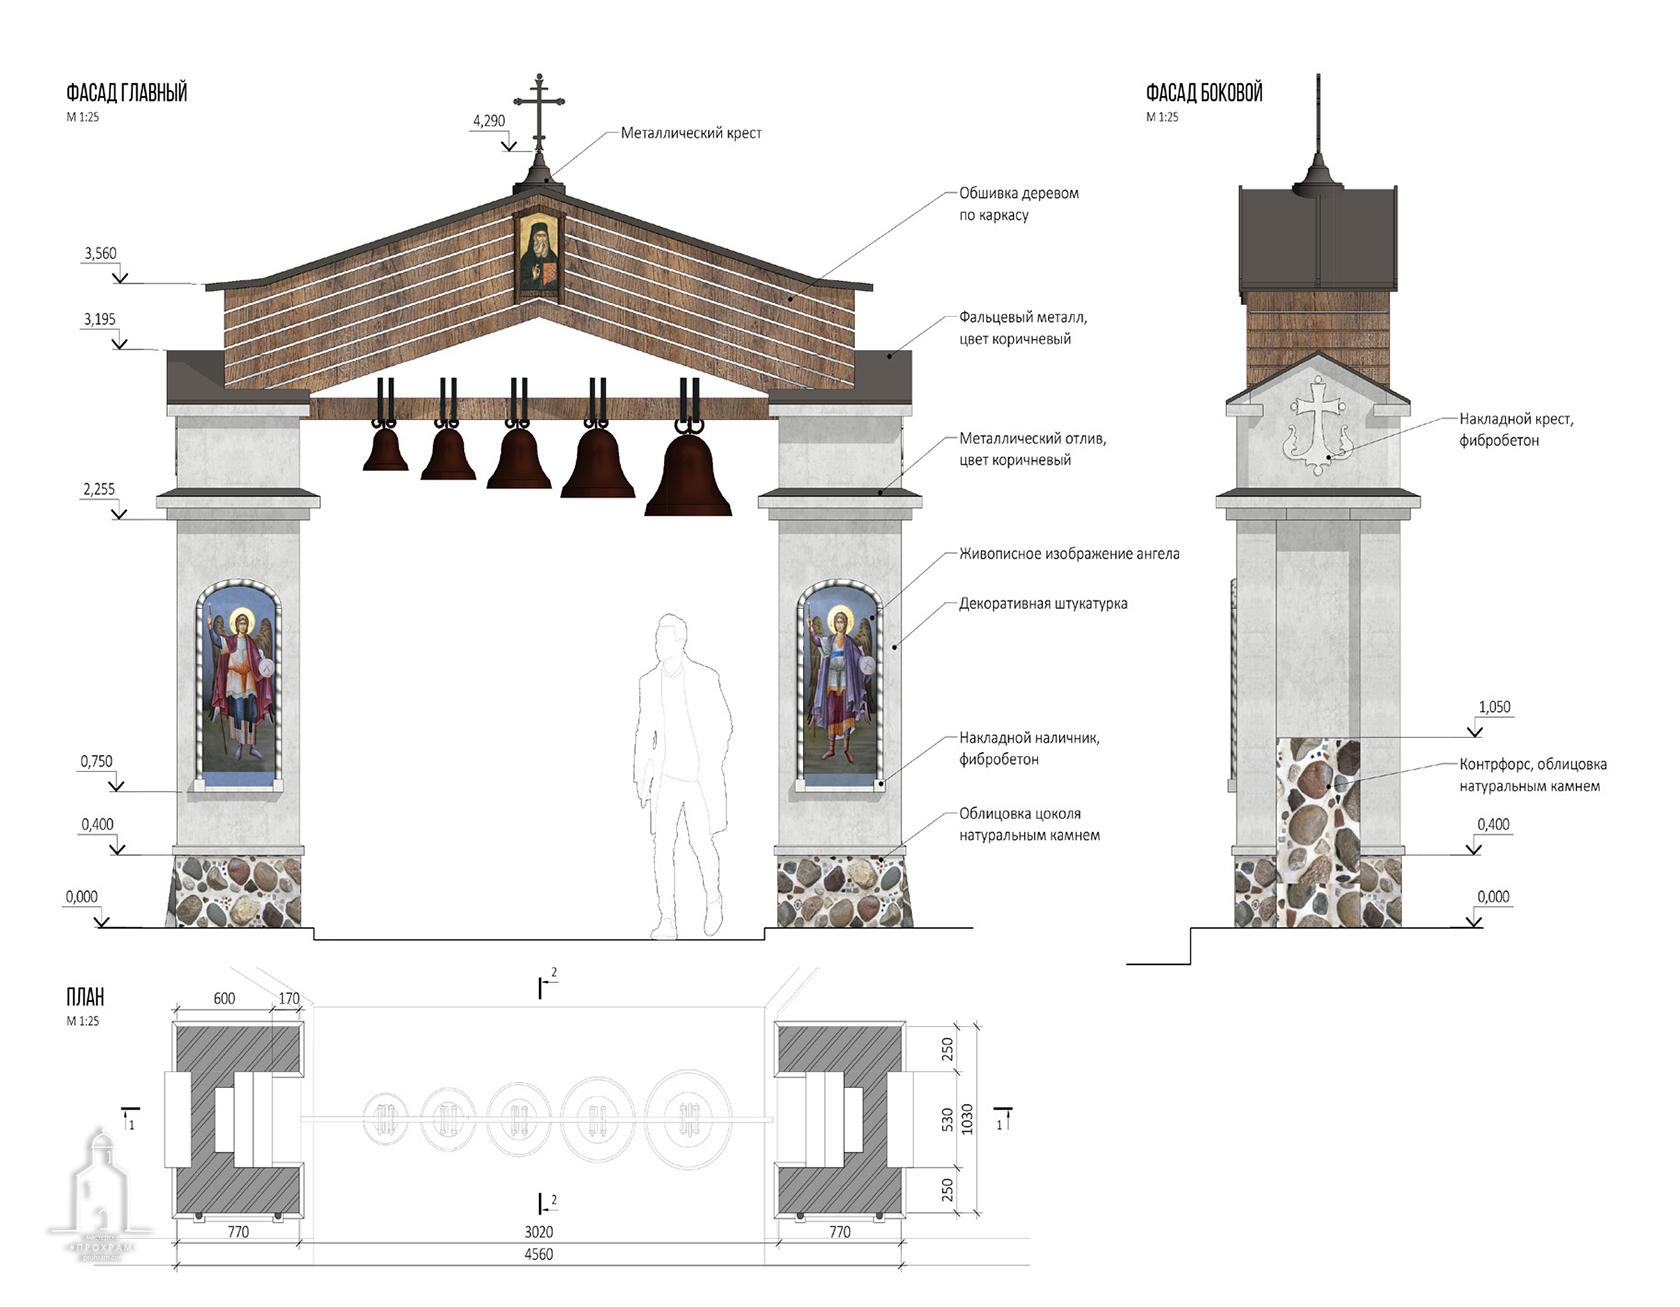 small architectural shapes, gates of the temple, gates of the temple project, sacred architecture, orthodox architecture project